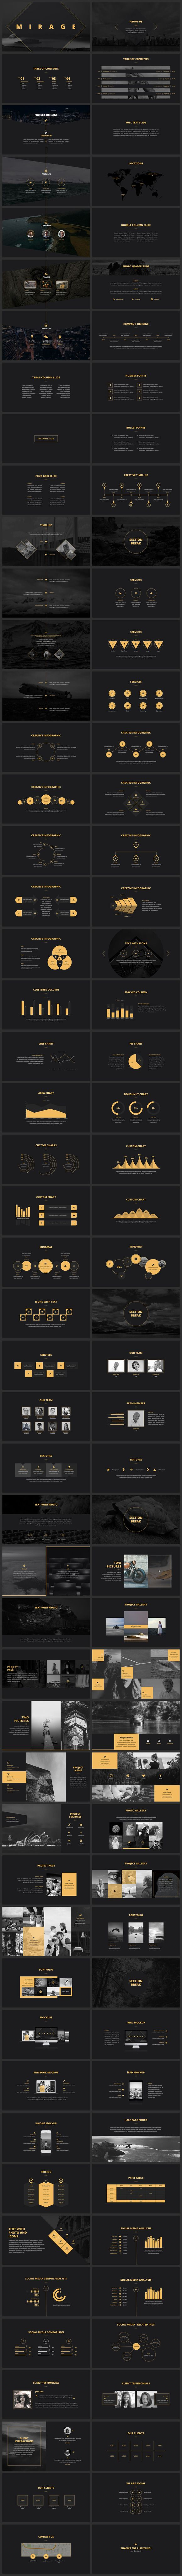 Mirage #PowerPoint #Template by SlideStation on @Creative Market creativemarket.co... #design #creative #creativity #templates #presentations #ppt #slide